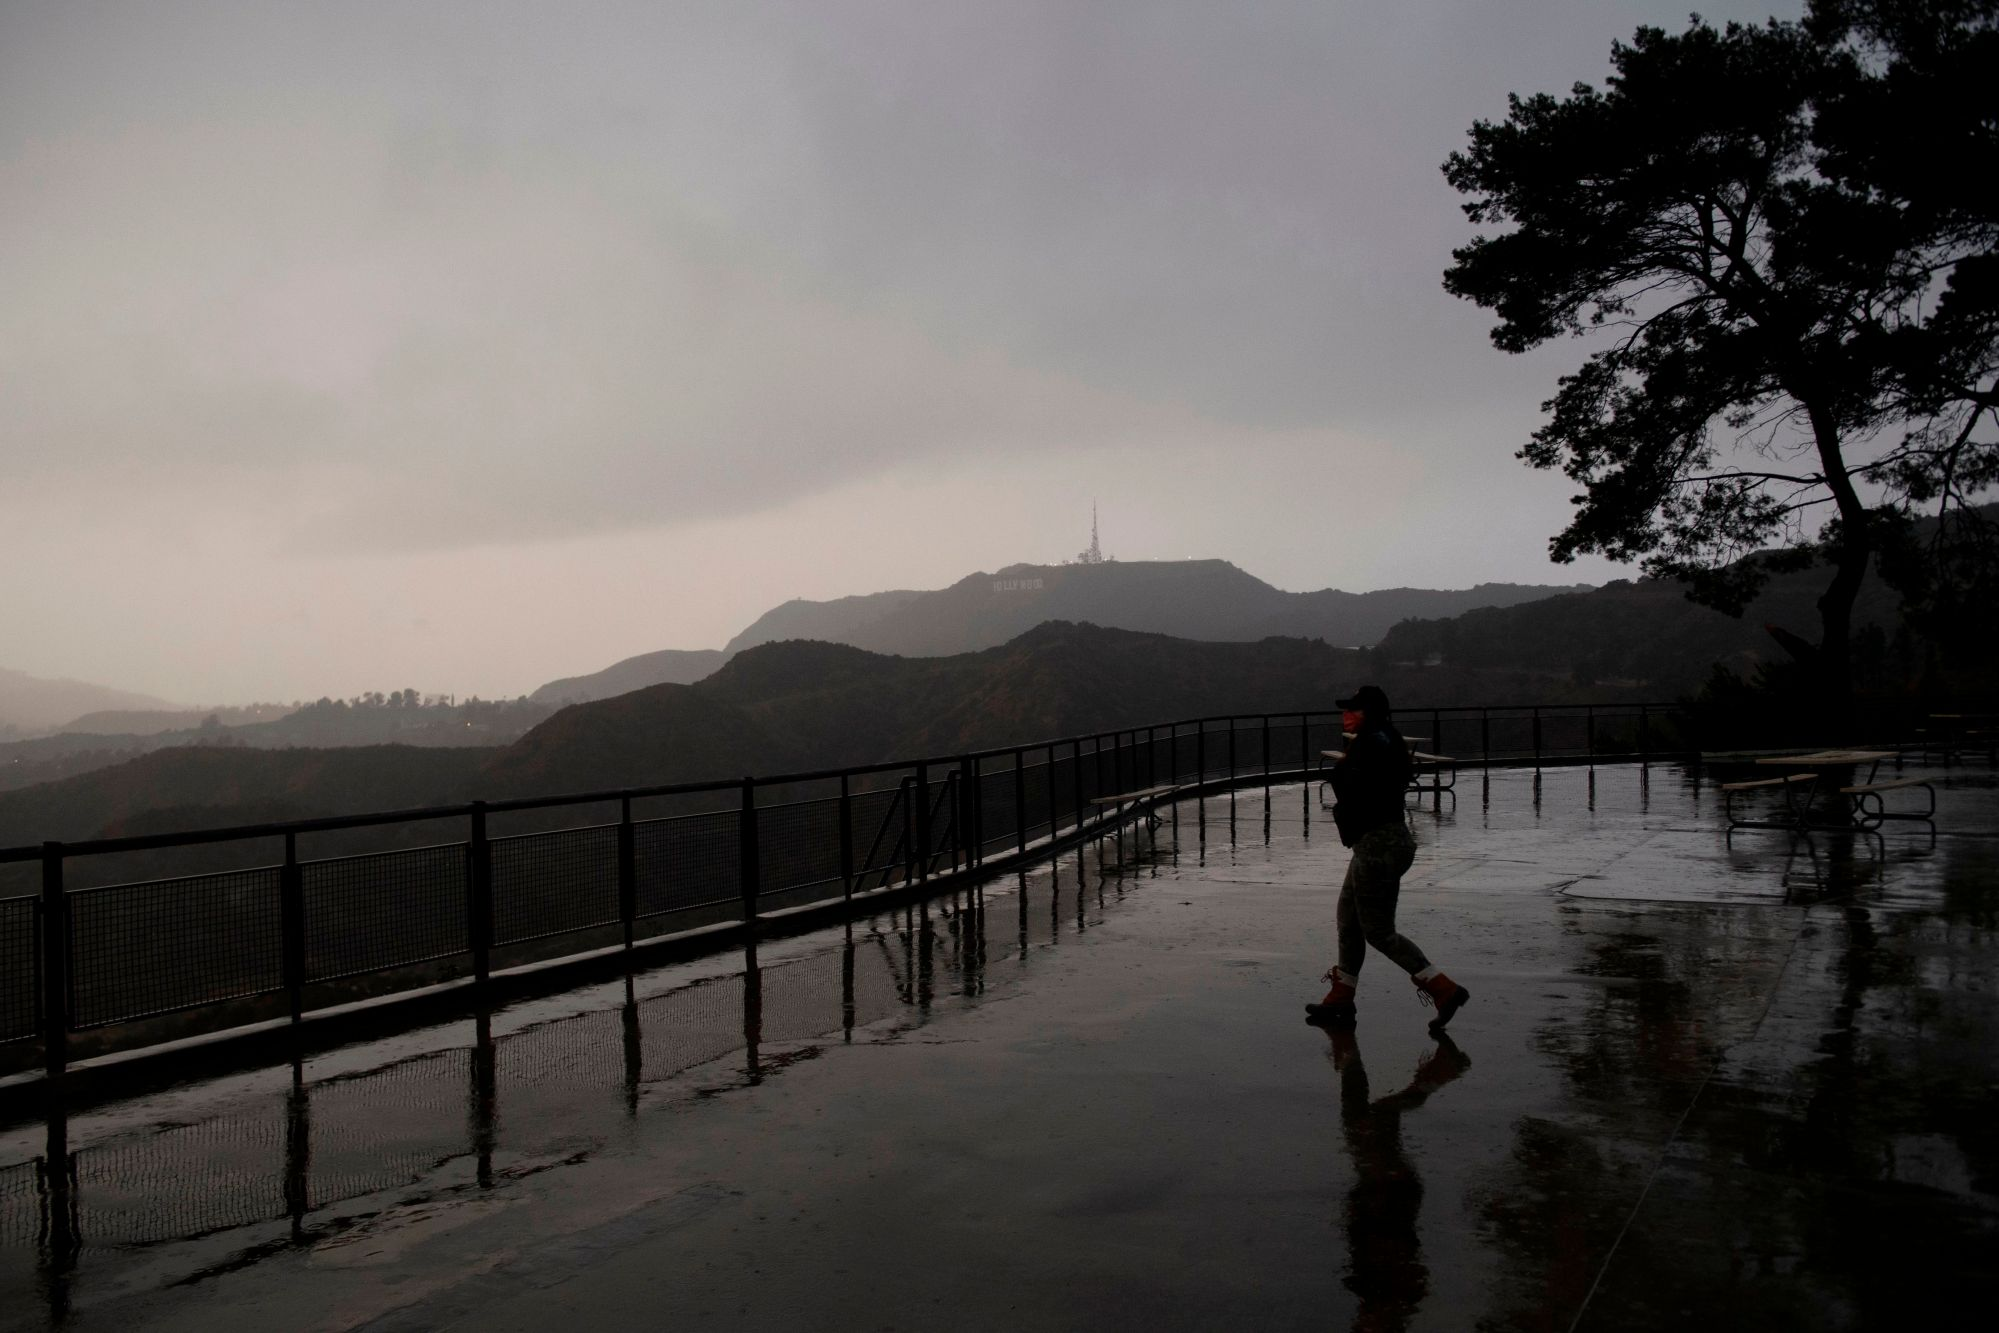 A person wears a face mask while walking to take pictures from a viewing area overlooking the Hollywood sign shrouded by clouds during heavy rains as seen from the Griffith Observatory on December 28, 2020 in Los Angeles, California. (Patrick T. Fallon/AFP via Getty Images)